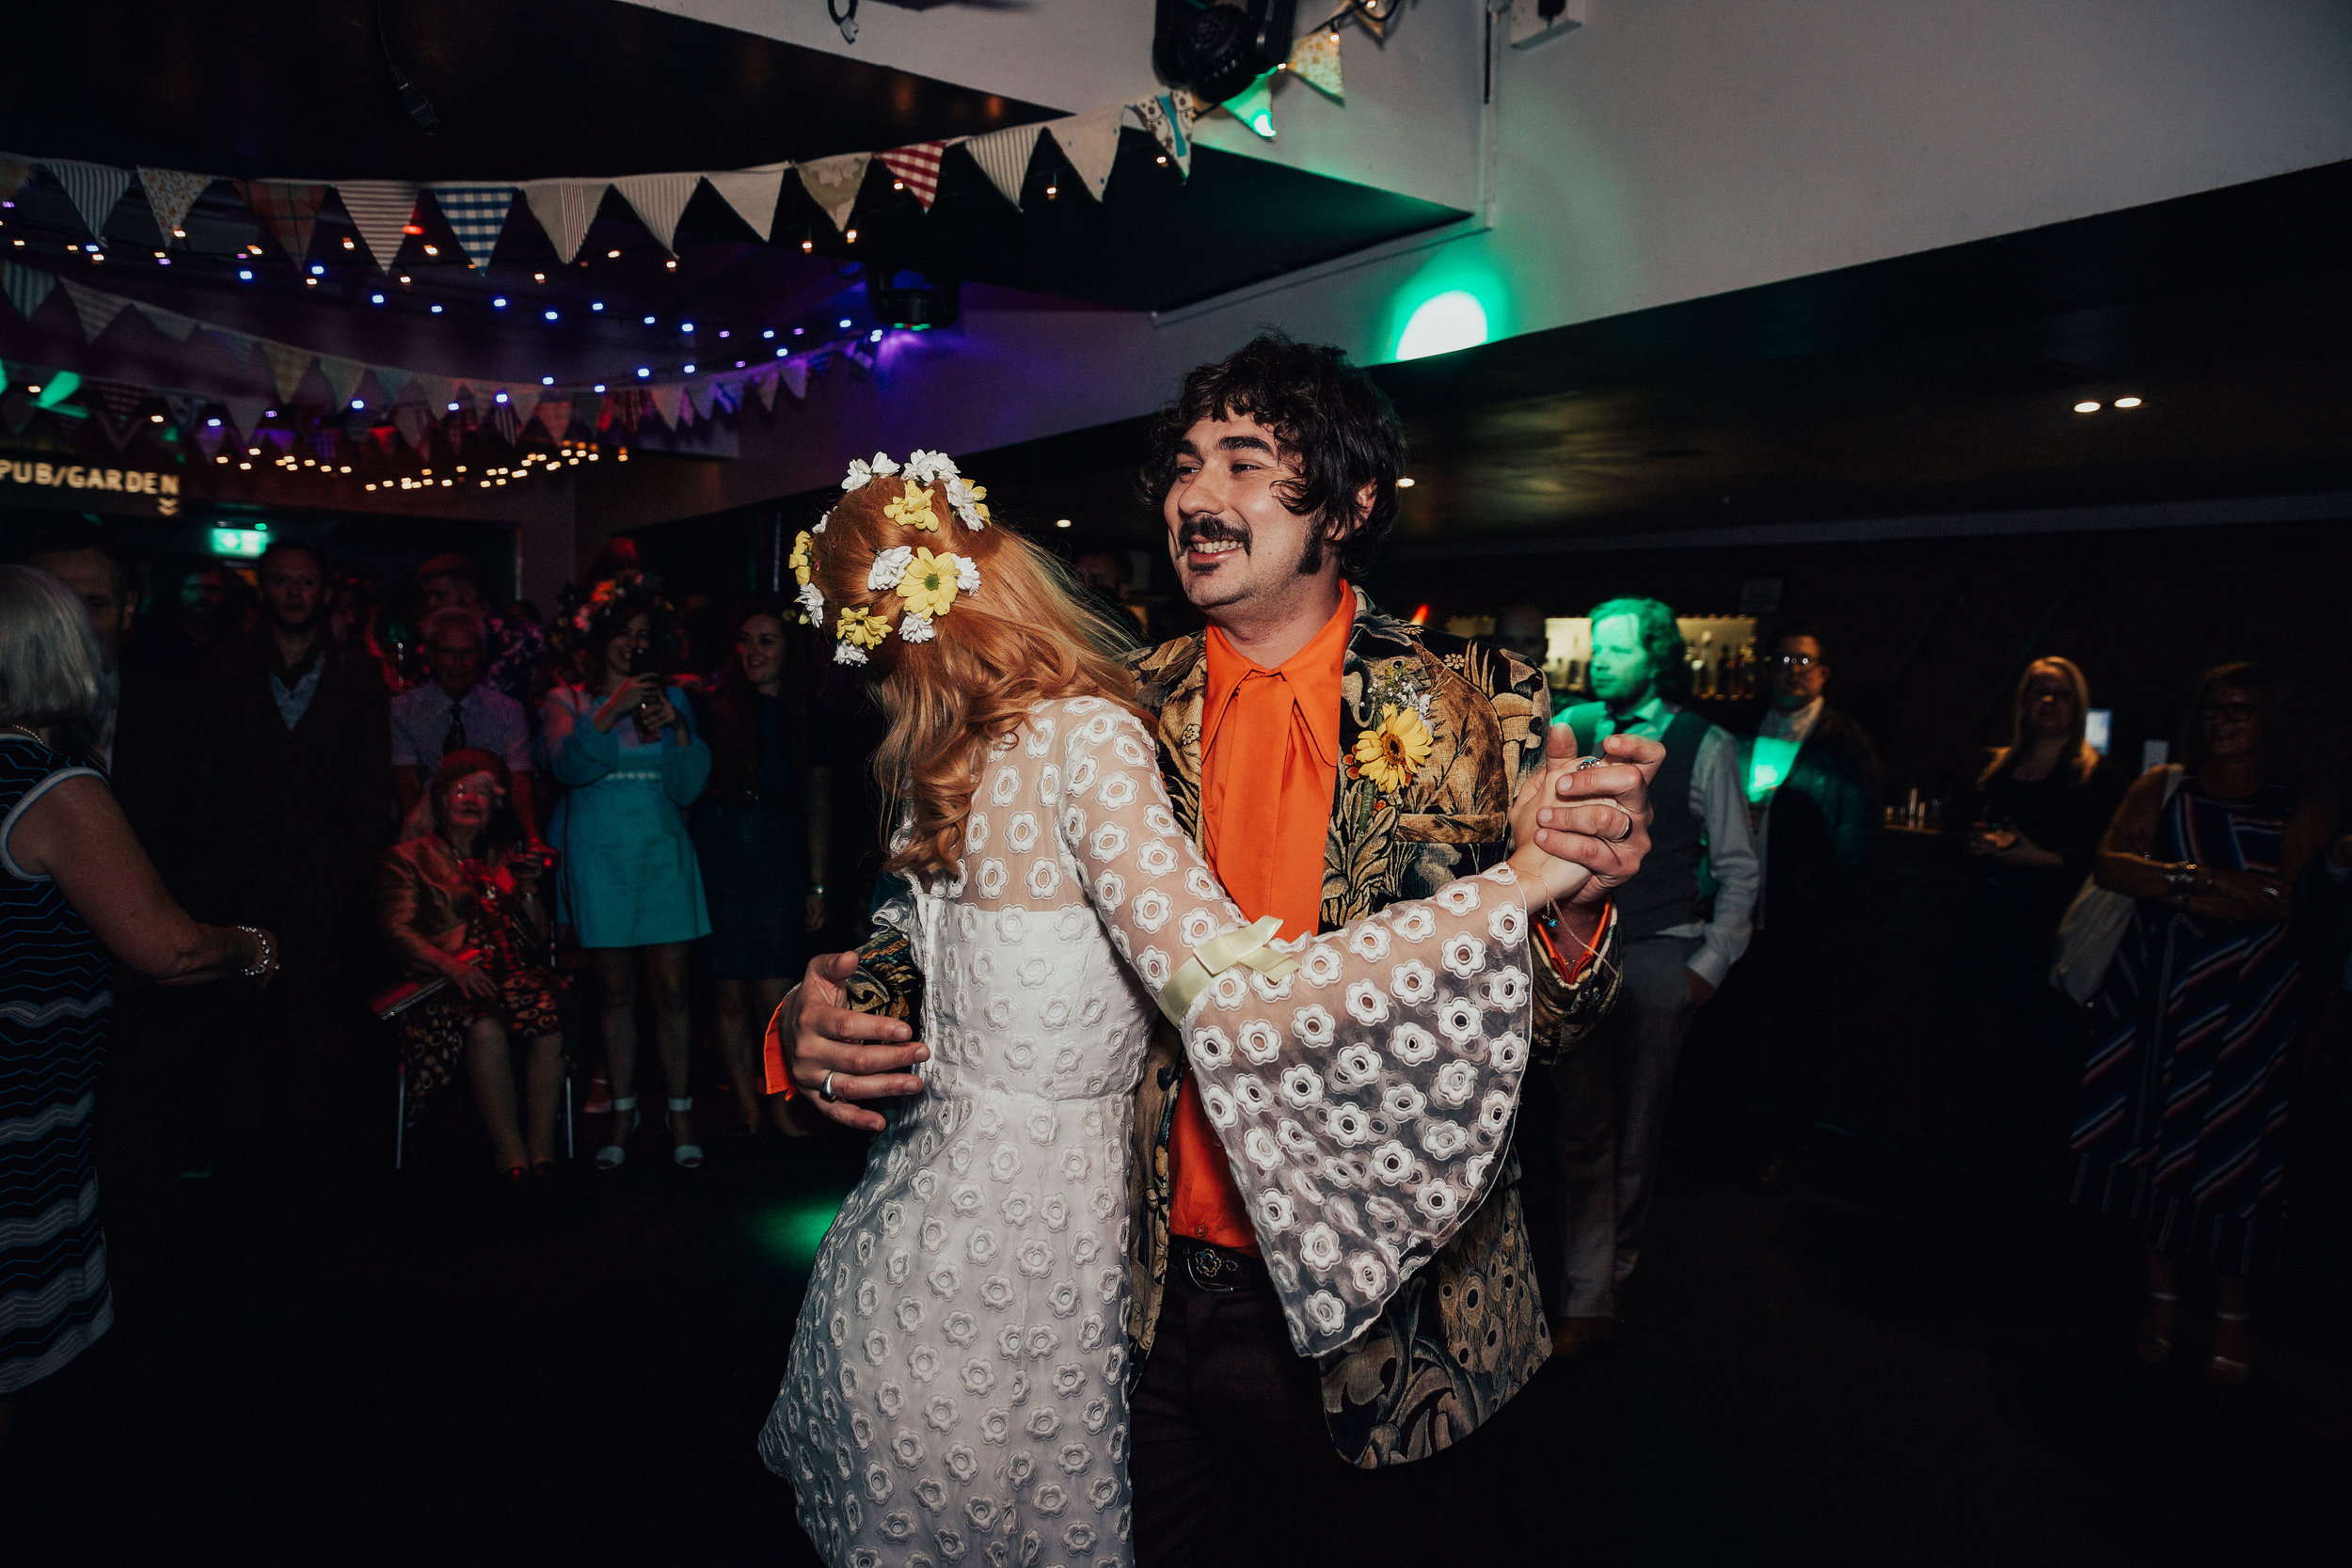 ALTERNATIVE_WEDDING_PHOTOGRAPHY_LEEDS_UK_PJ_PHILLIPS_PHOTOGRAPHY_154.jpg